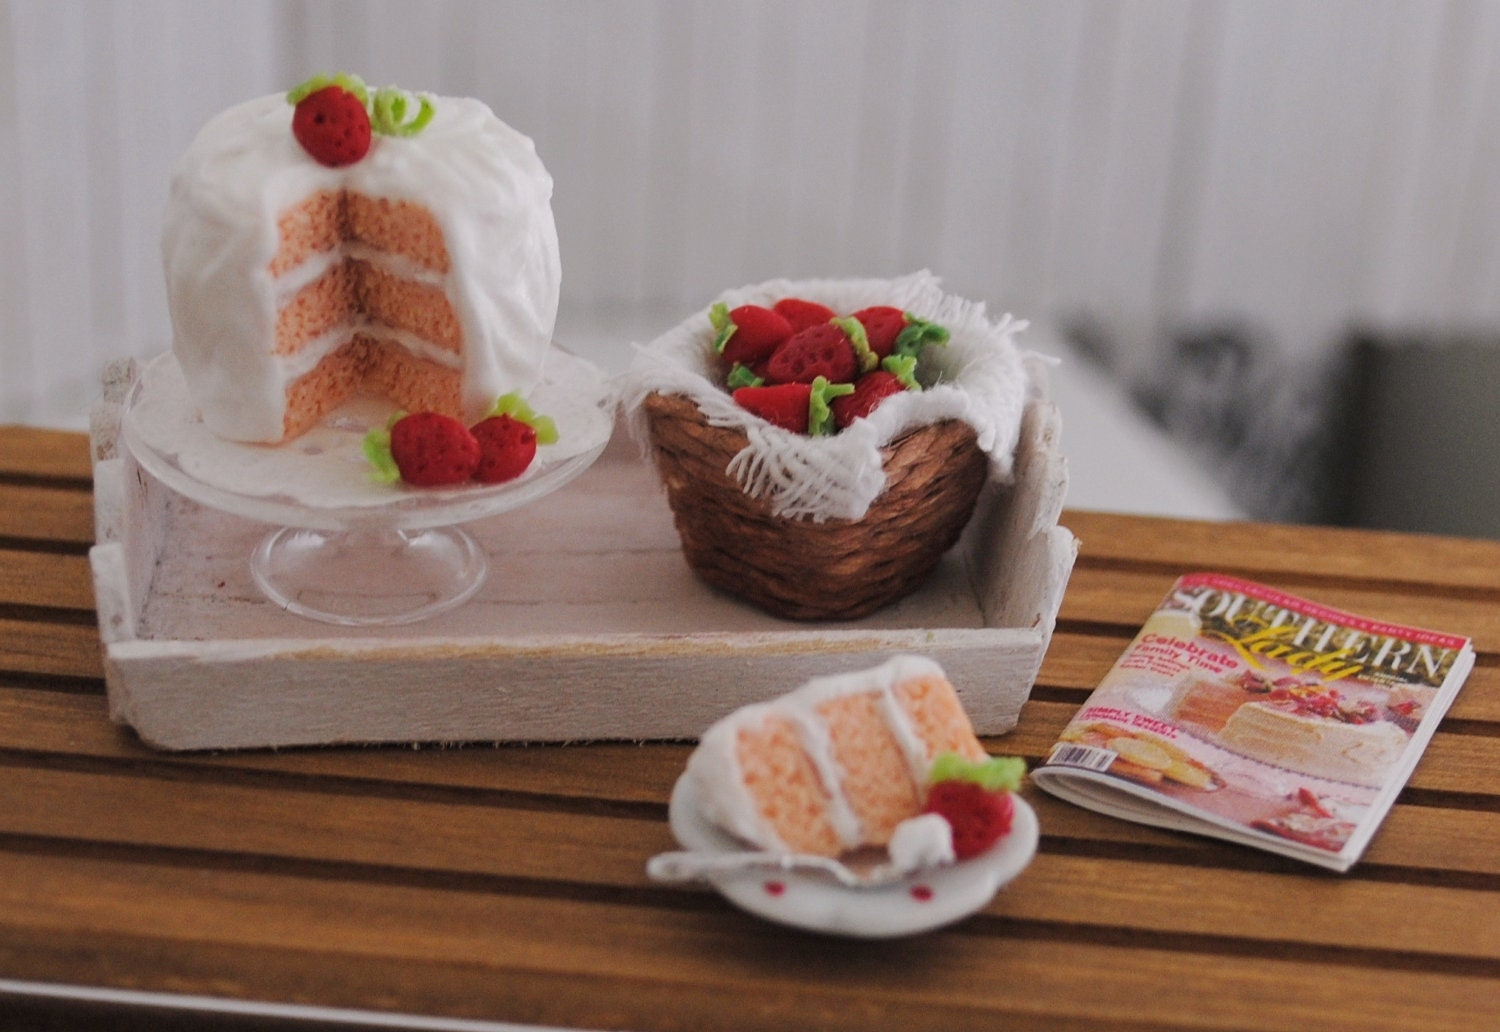 Miniature Strawberry Cake With A Basket Of Strawberries On A Shabby Chic Tray - LittleThingsByAnna